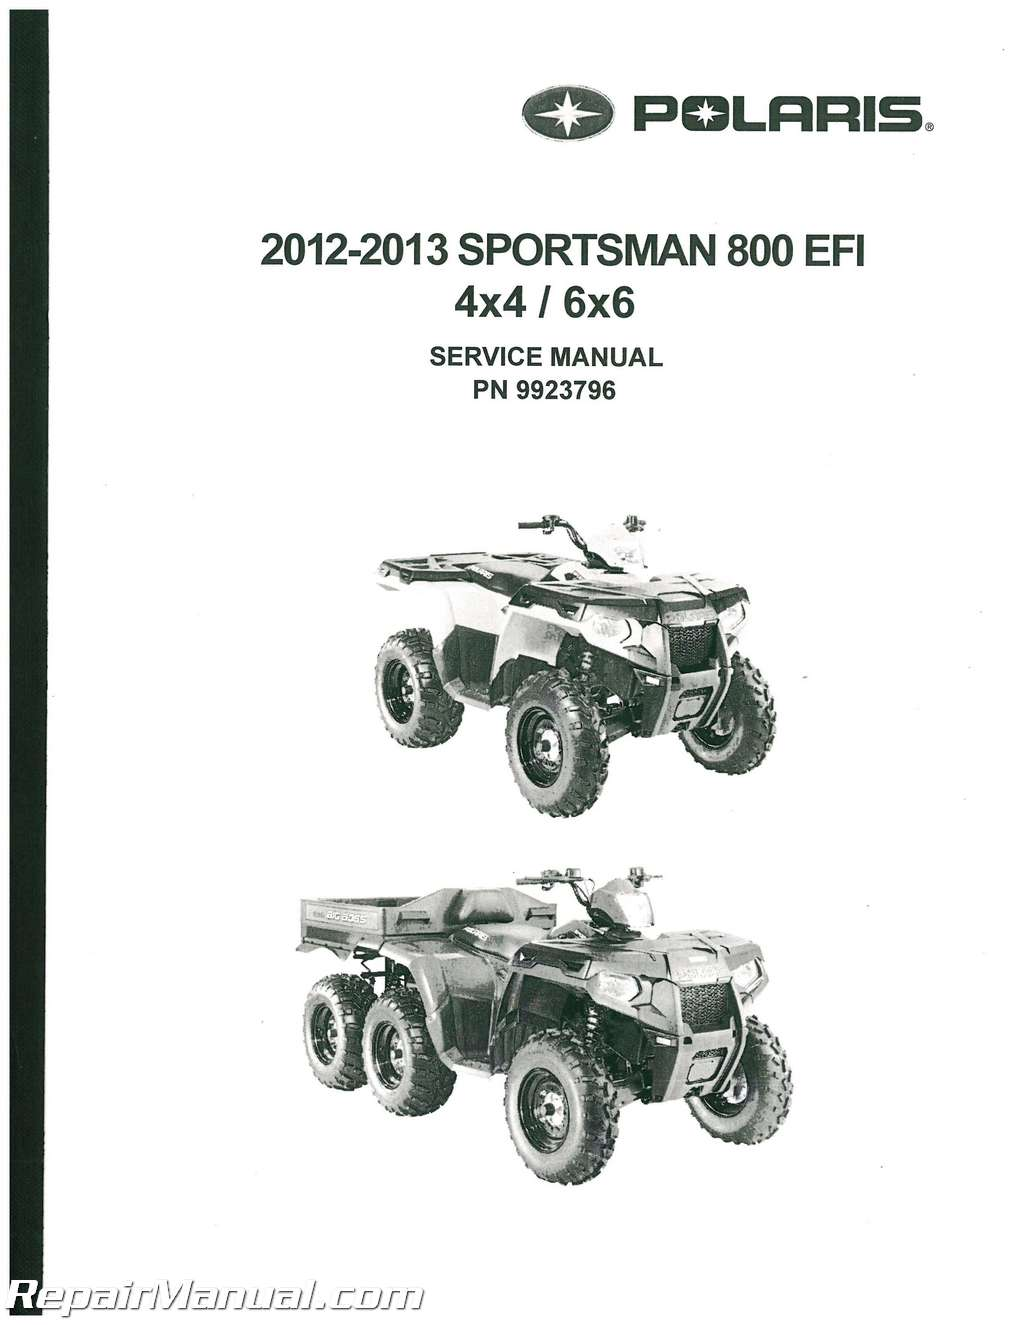 2012-2013 Sportsman 800 EFI 4 X 4 / 6 X 6 Big Boss Service